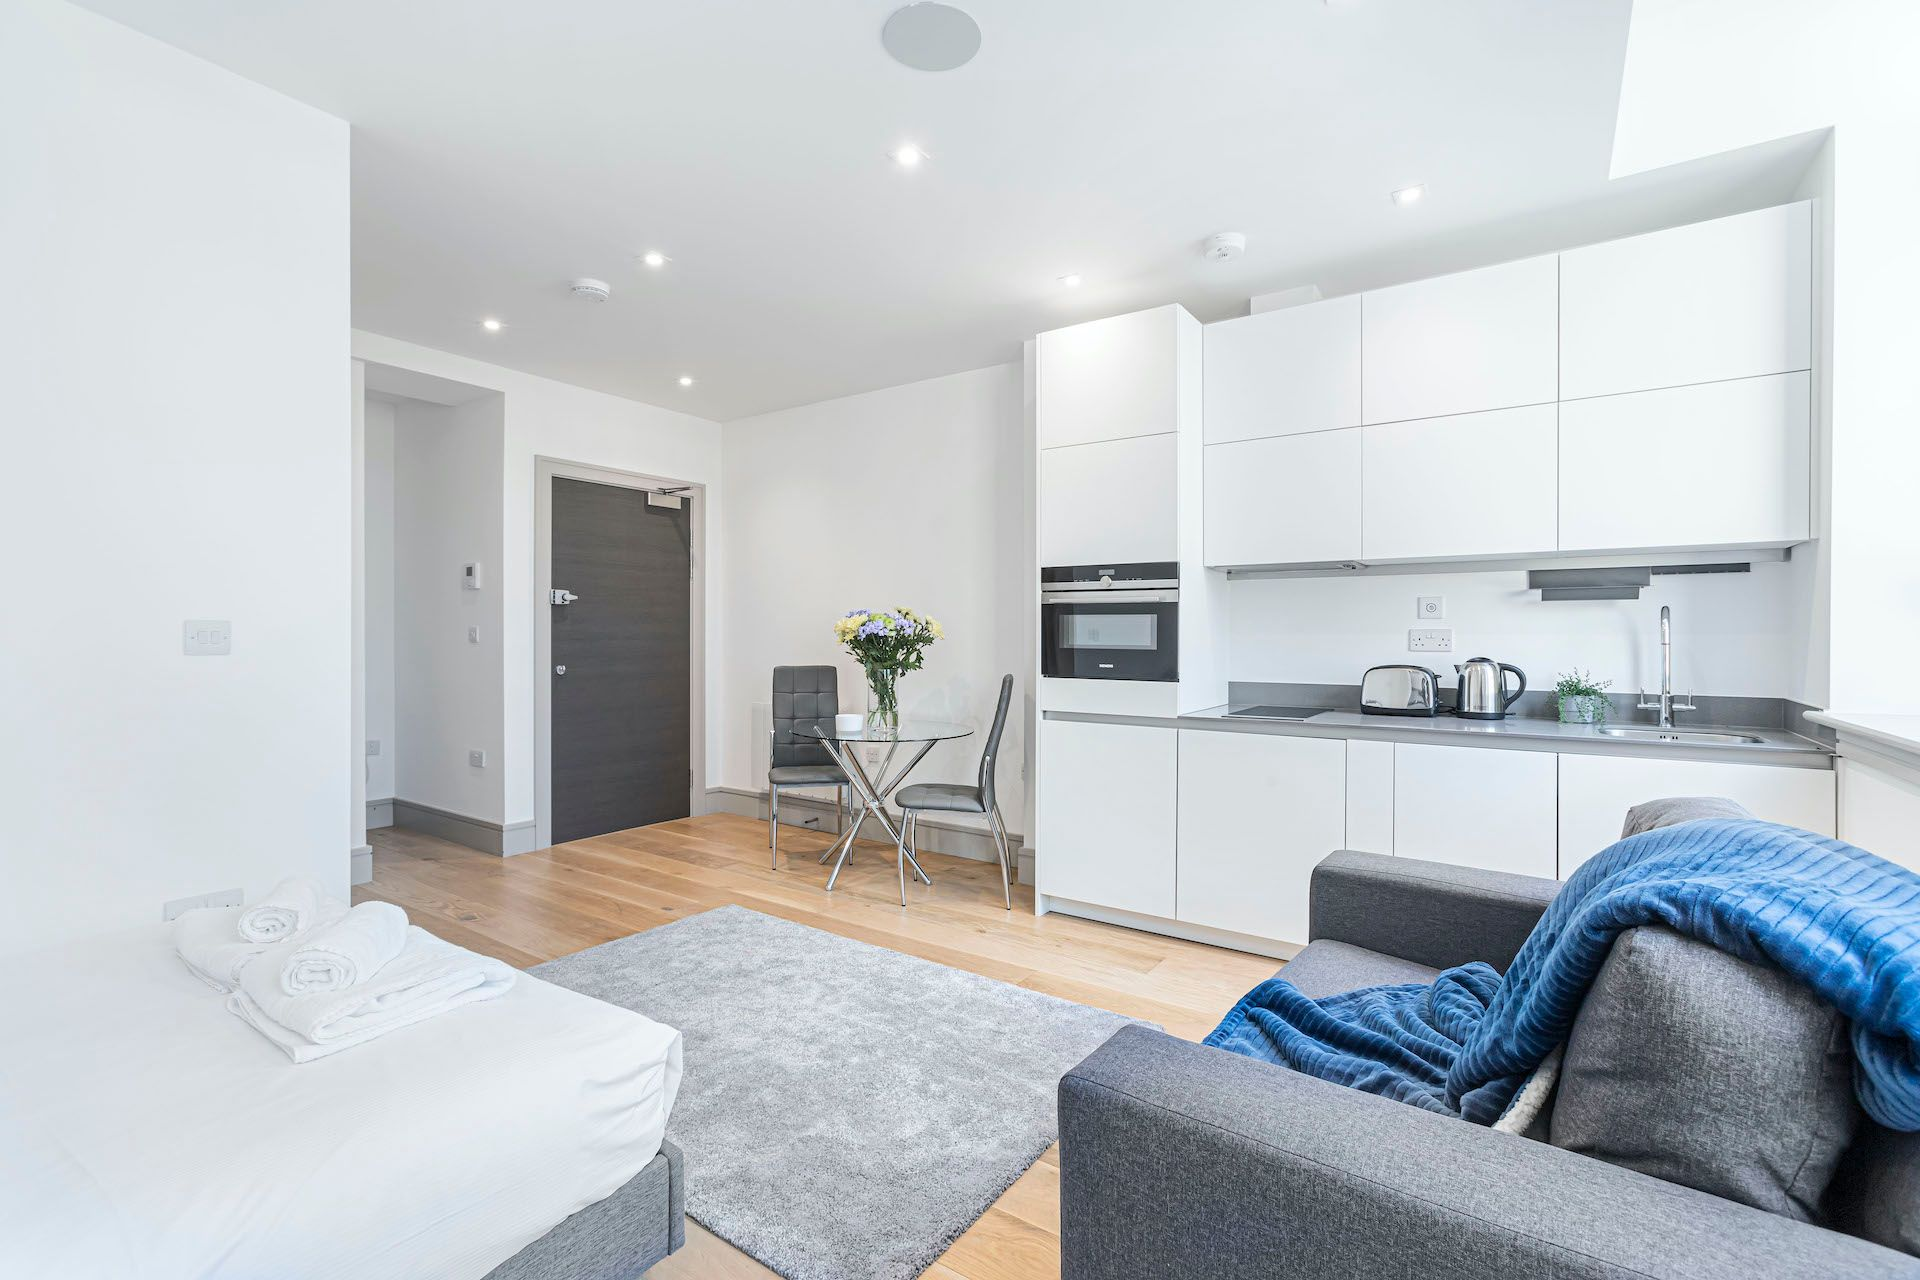 Studio apartment to rent in London ZEN-ZH-0009